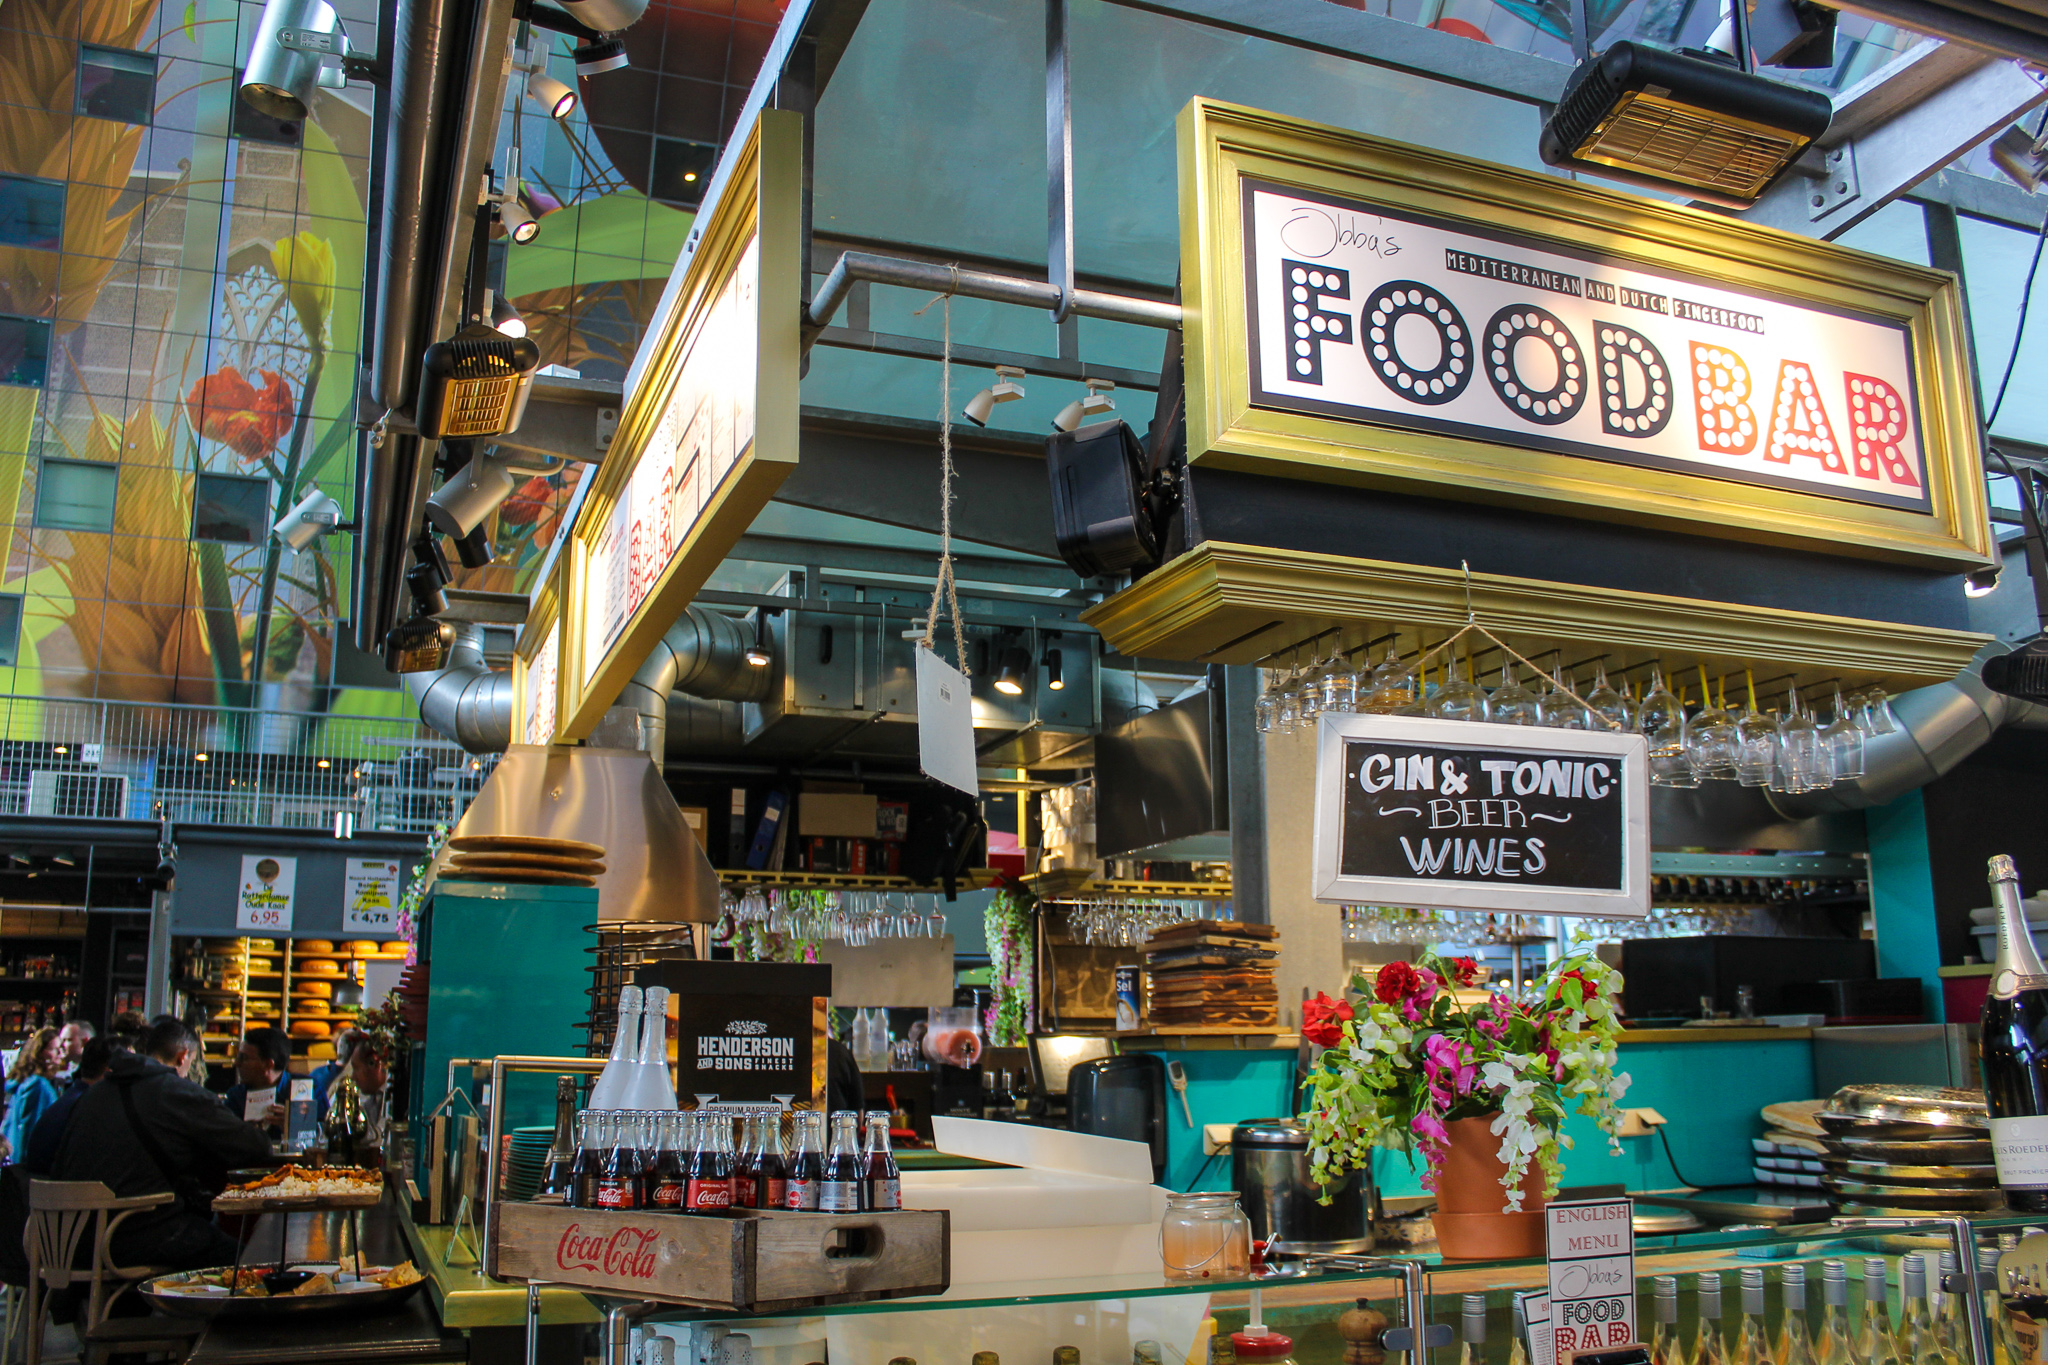 your day trip to rotterdam should include the food market